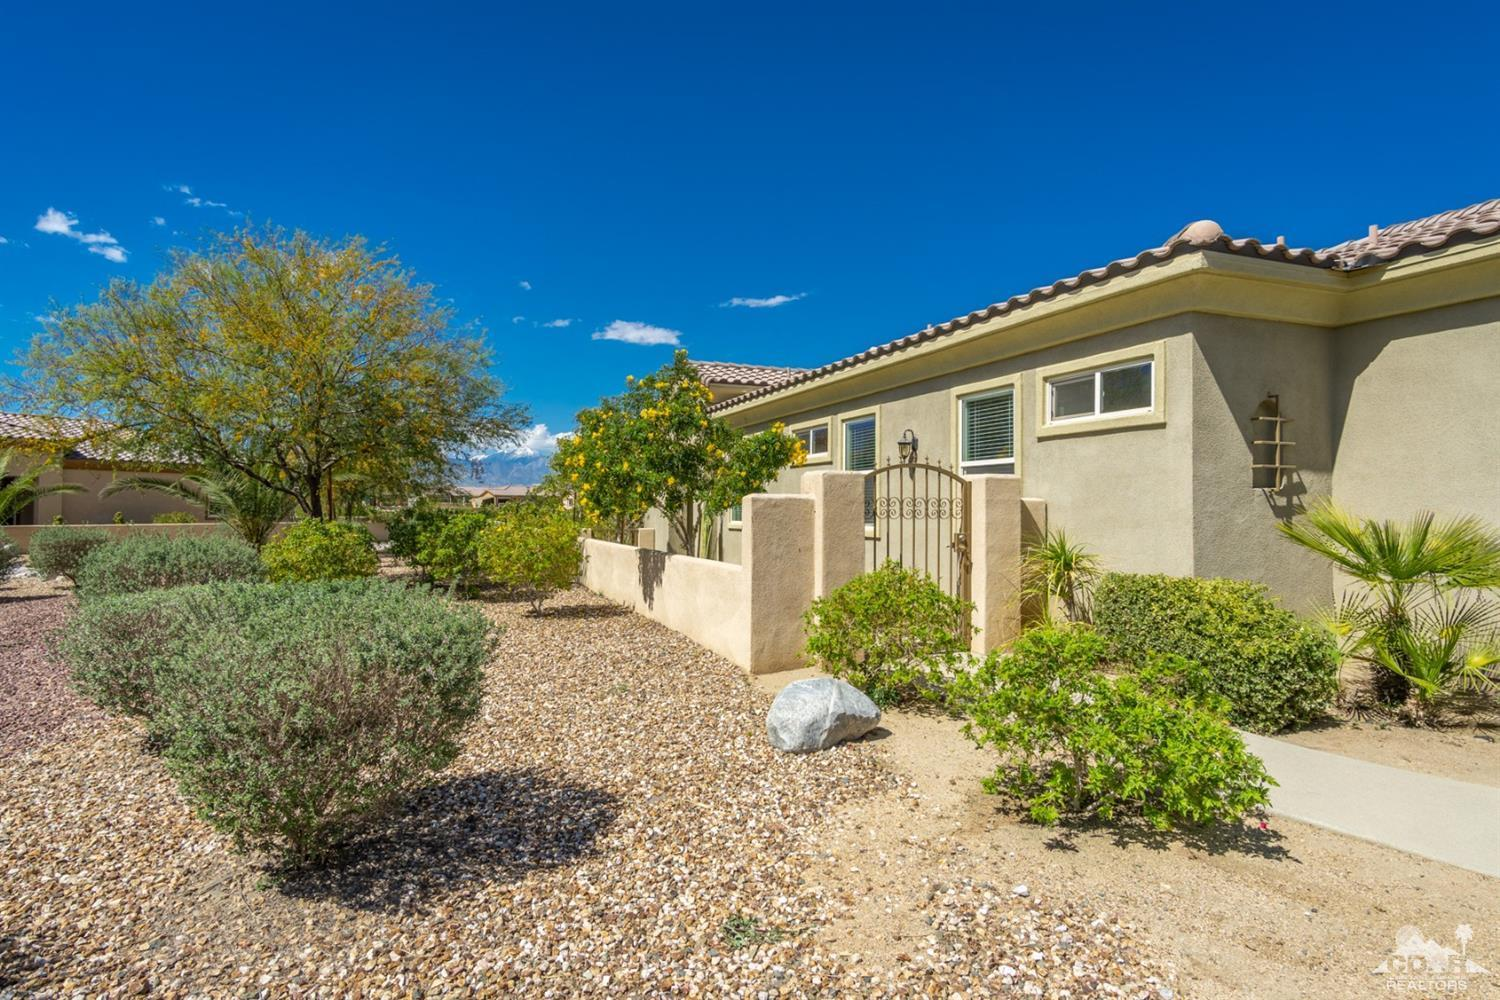 28857 W Natoma Drive, Cathedral City, California 92234, 3 Bedrooms Bedrooms, ,4 BathroomsBathrooms,Residential,For Sale,28857 W Natoma Drive,219033962